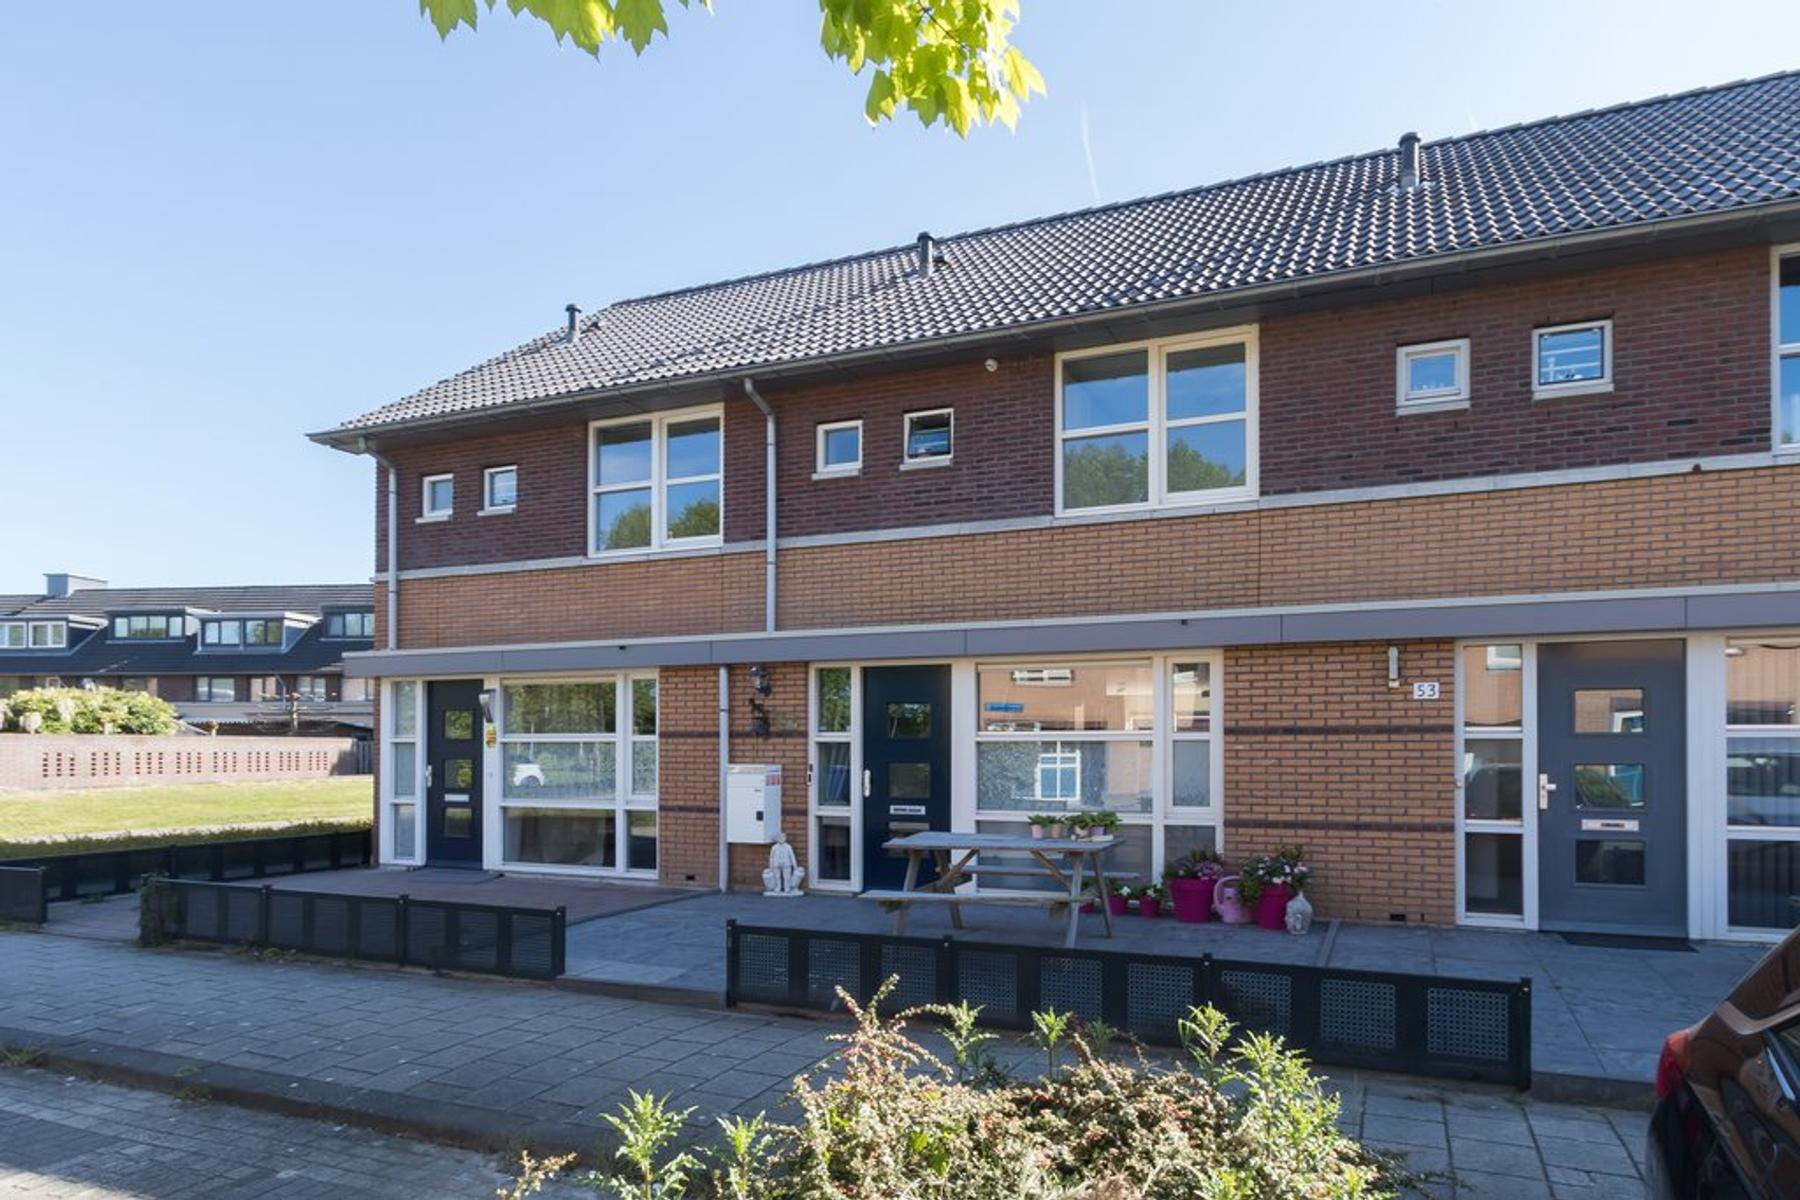 Jacques Perkstraat 51 in Almere 1321 VB